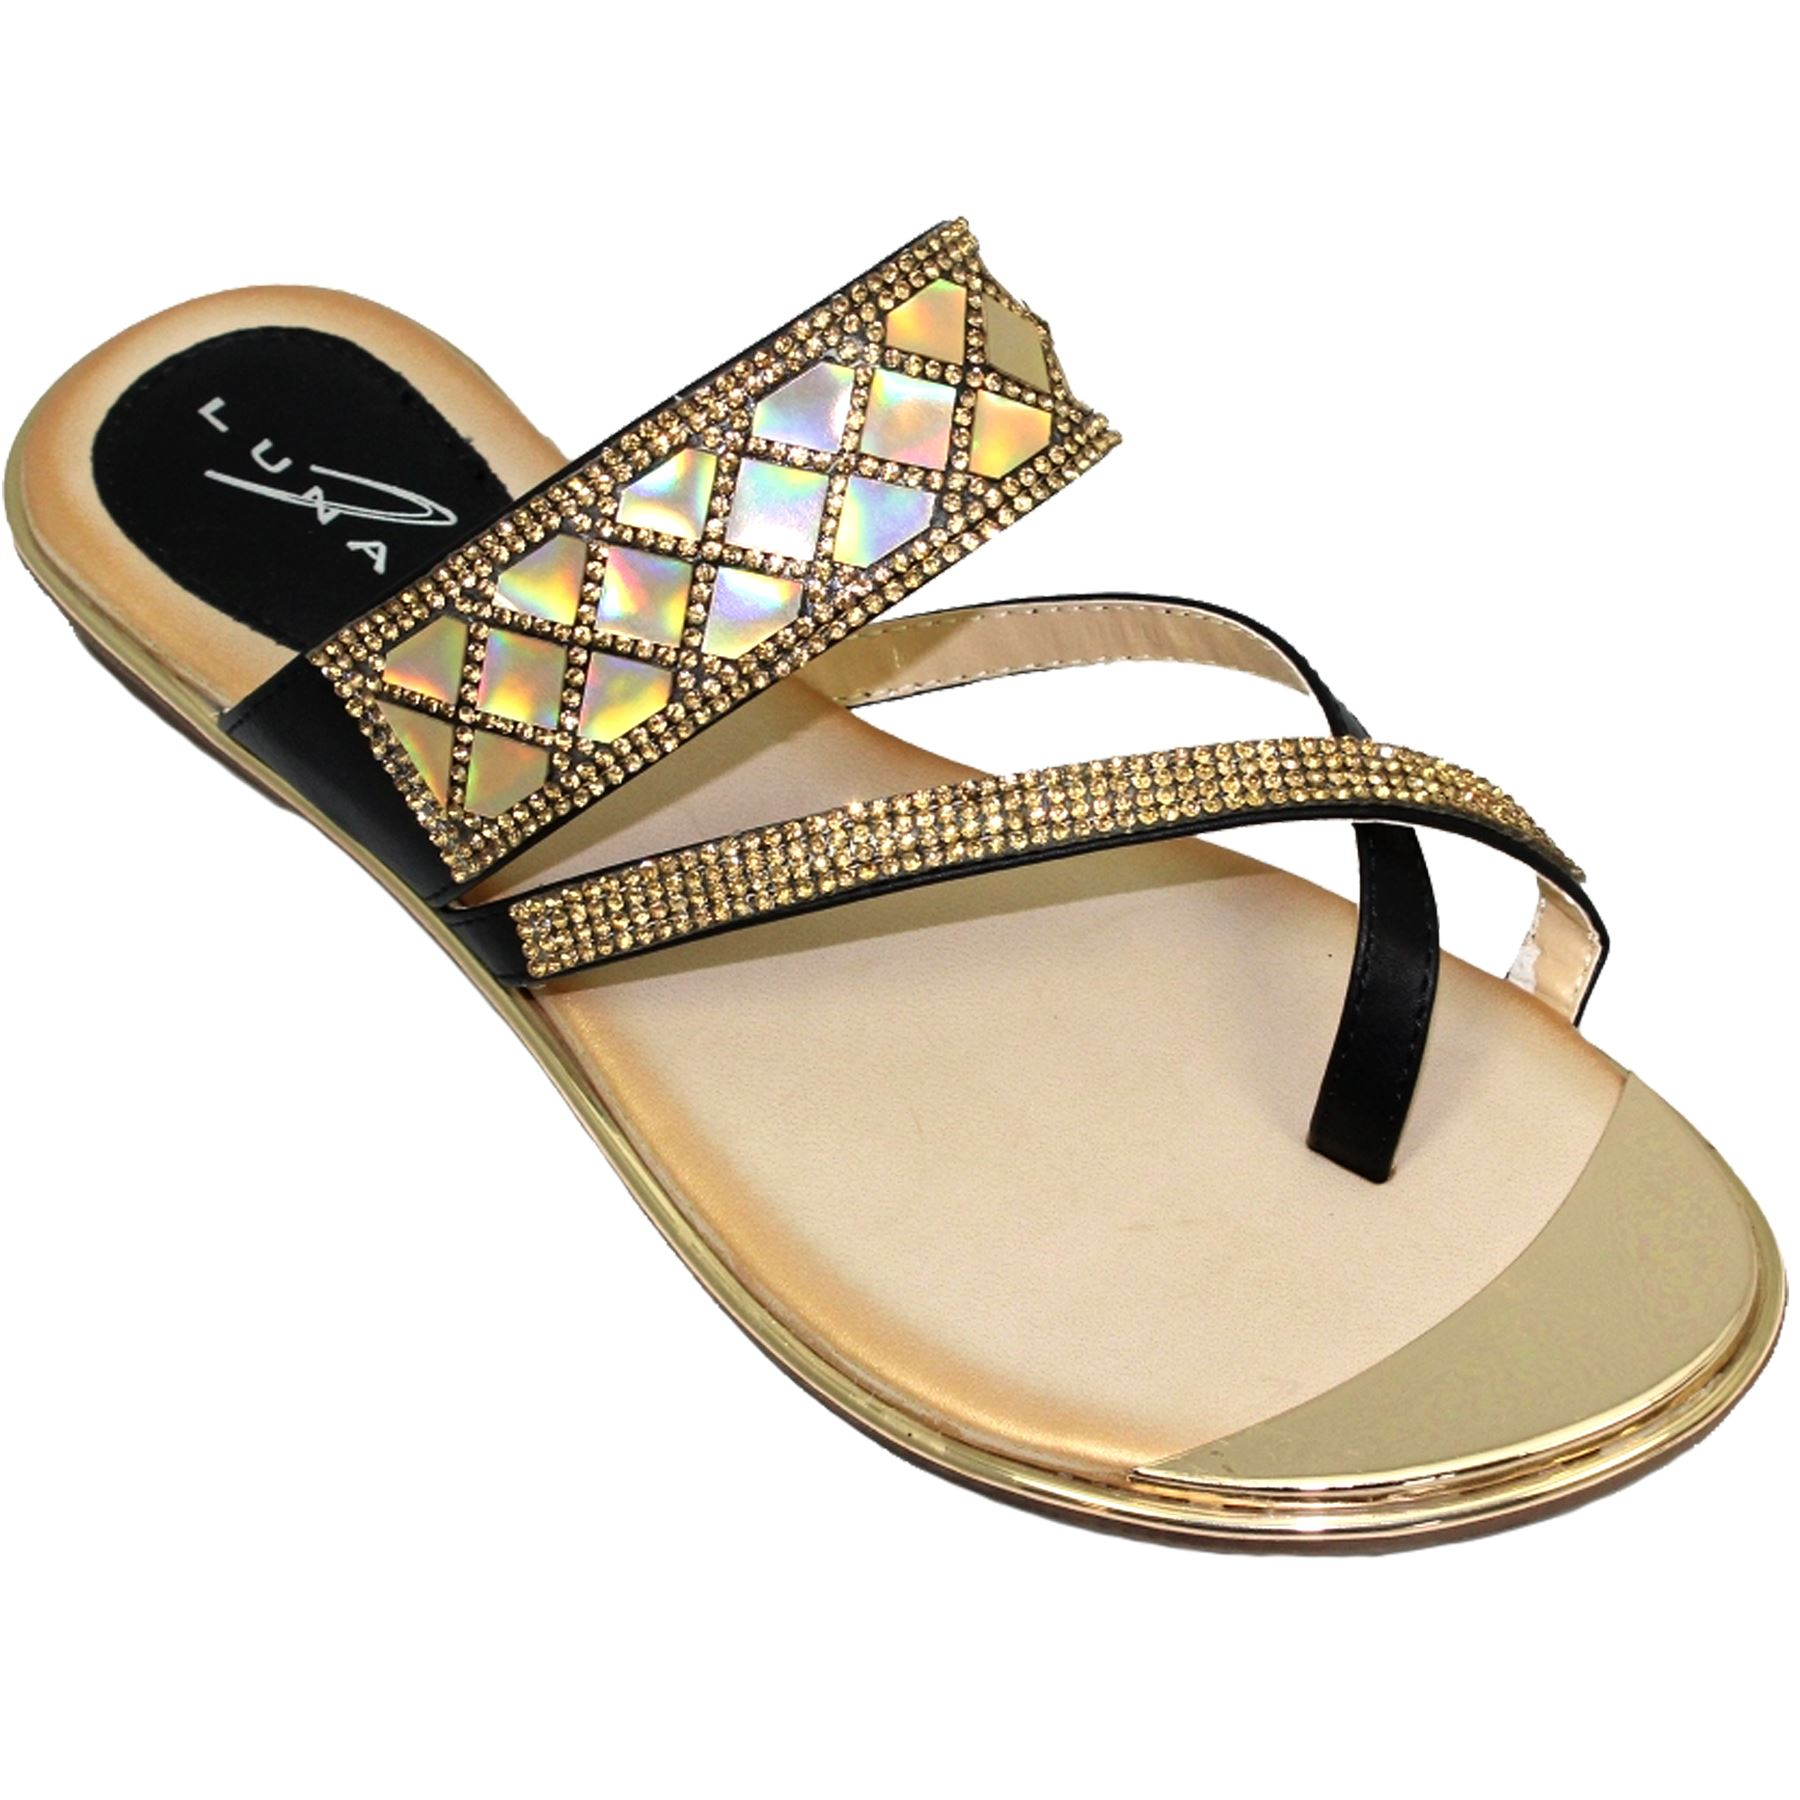 Jlh910 Aisha Faux Leather Gemstone Padded Insole Cross Strap Mule Tendencies Sandals Footbed 2 Brown 42